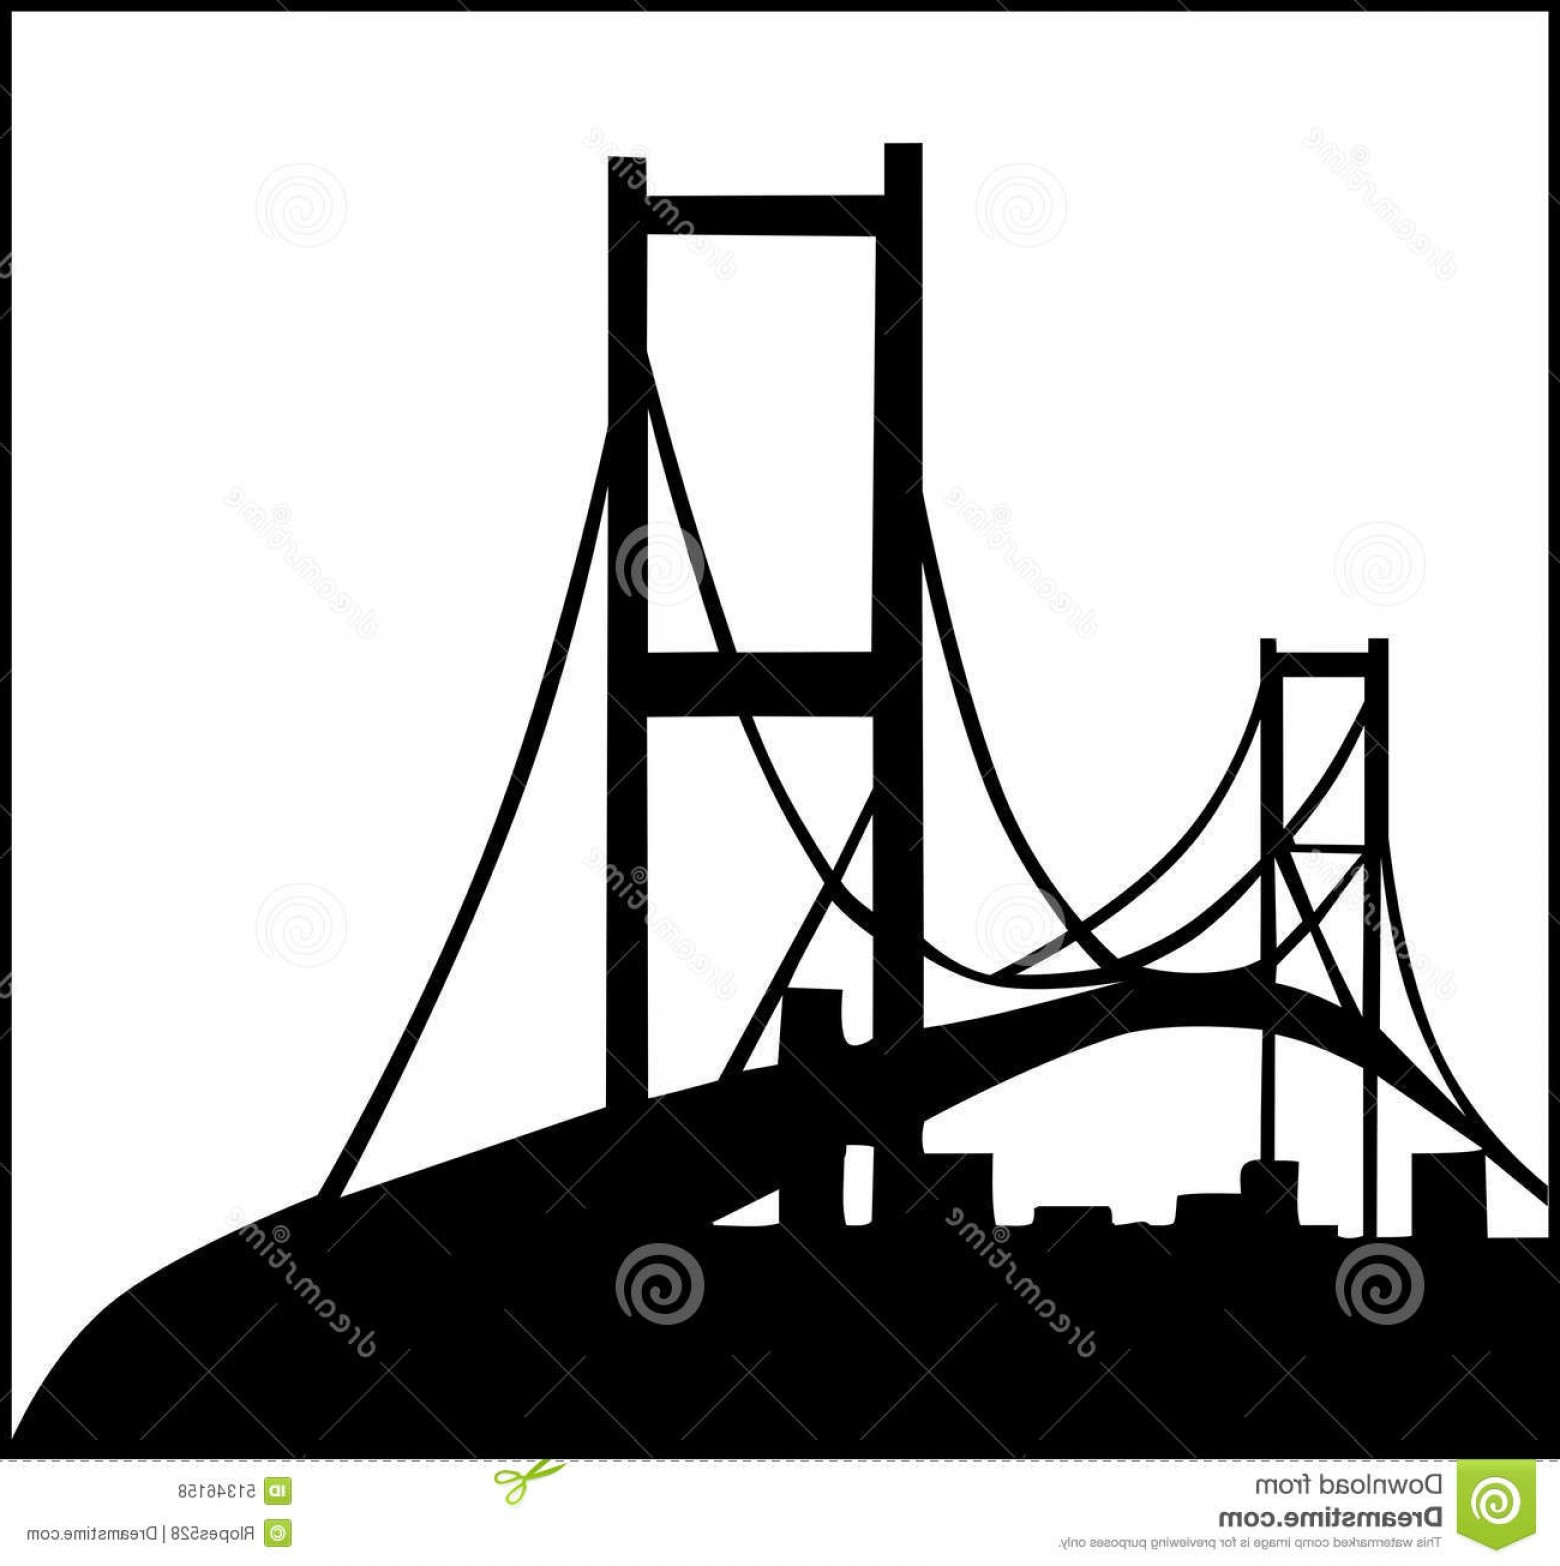 1560x1566 Stock Illustration Civil Engineering Logo Illustration Bridge